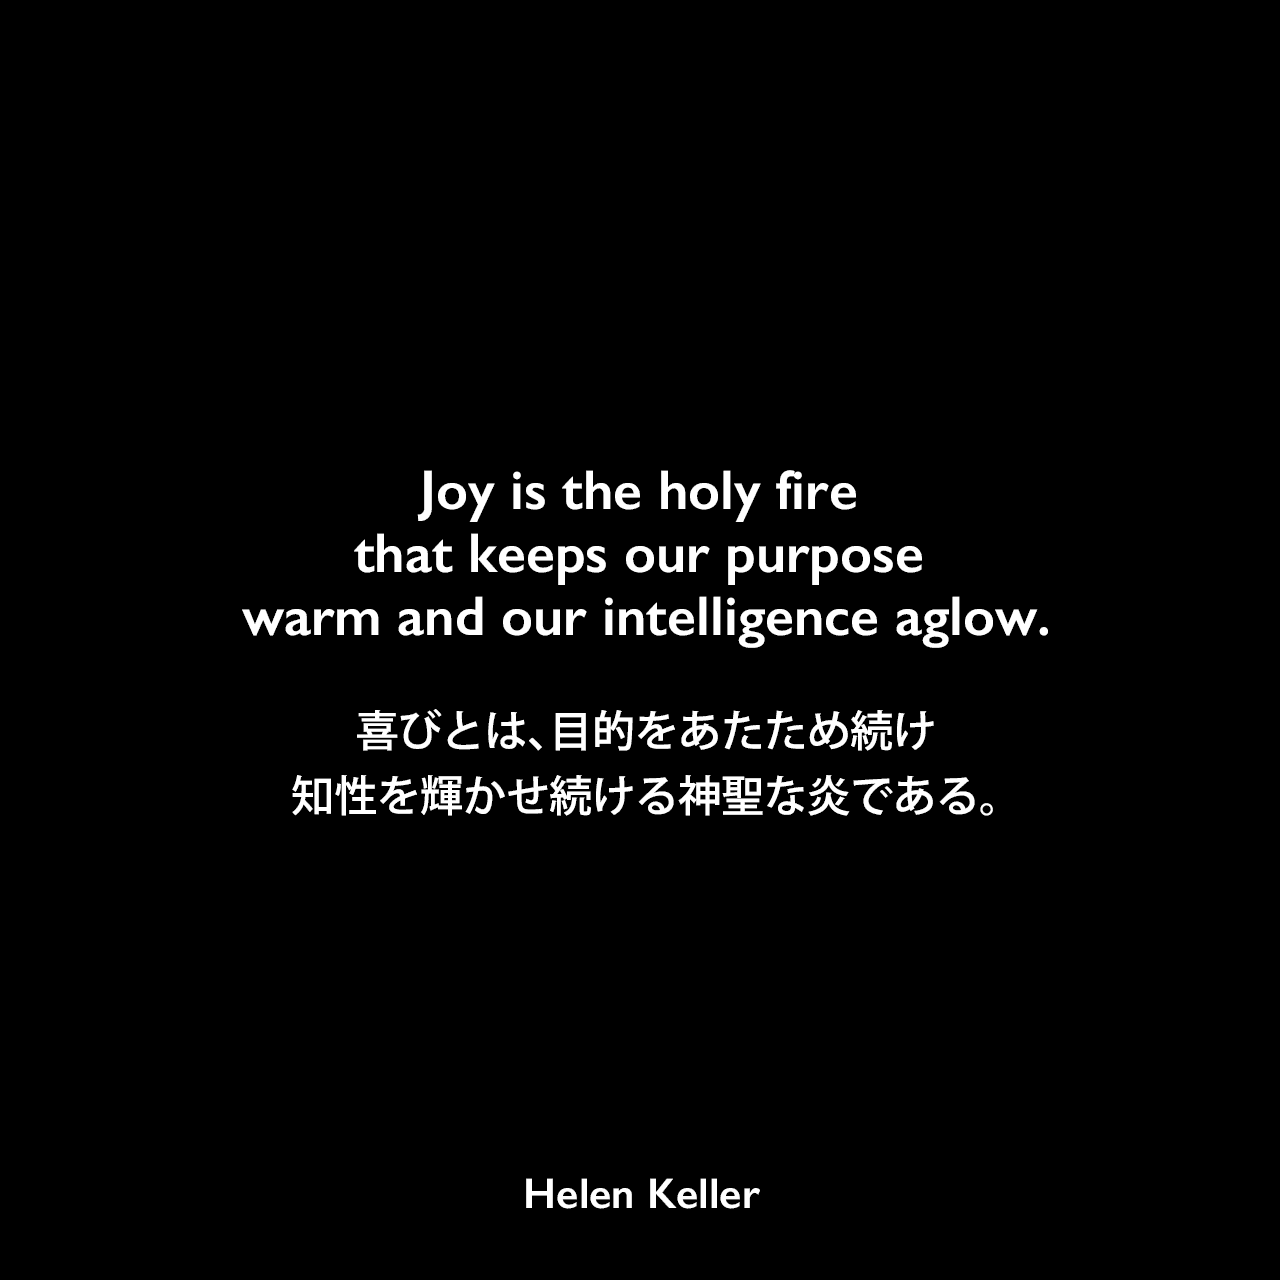 Joy is the holy fire that keeps our purpose warm and our intelligence aglow.喜びとは、目的をあたため続け、知性を輝かせ続ける神聖な炎である。Helen Keller